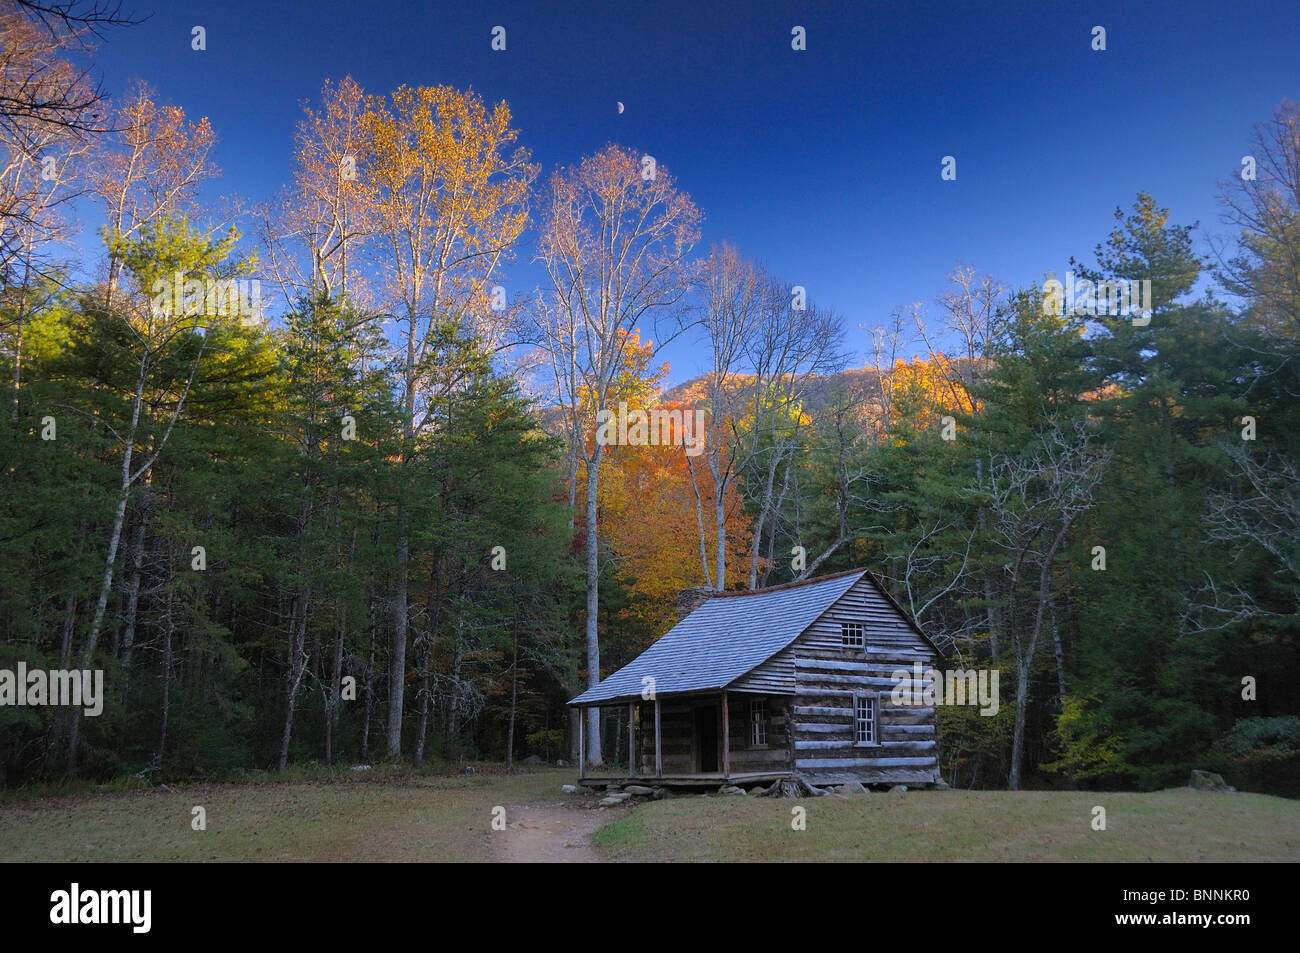 Carter Shield log house Cabin Cades Cove Great Smoky Mountains National Park Tennessee USA. Forest - Stock Image